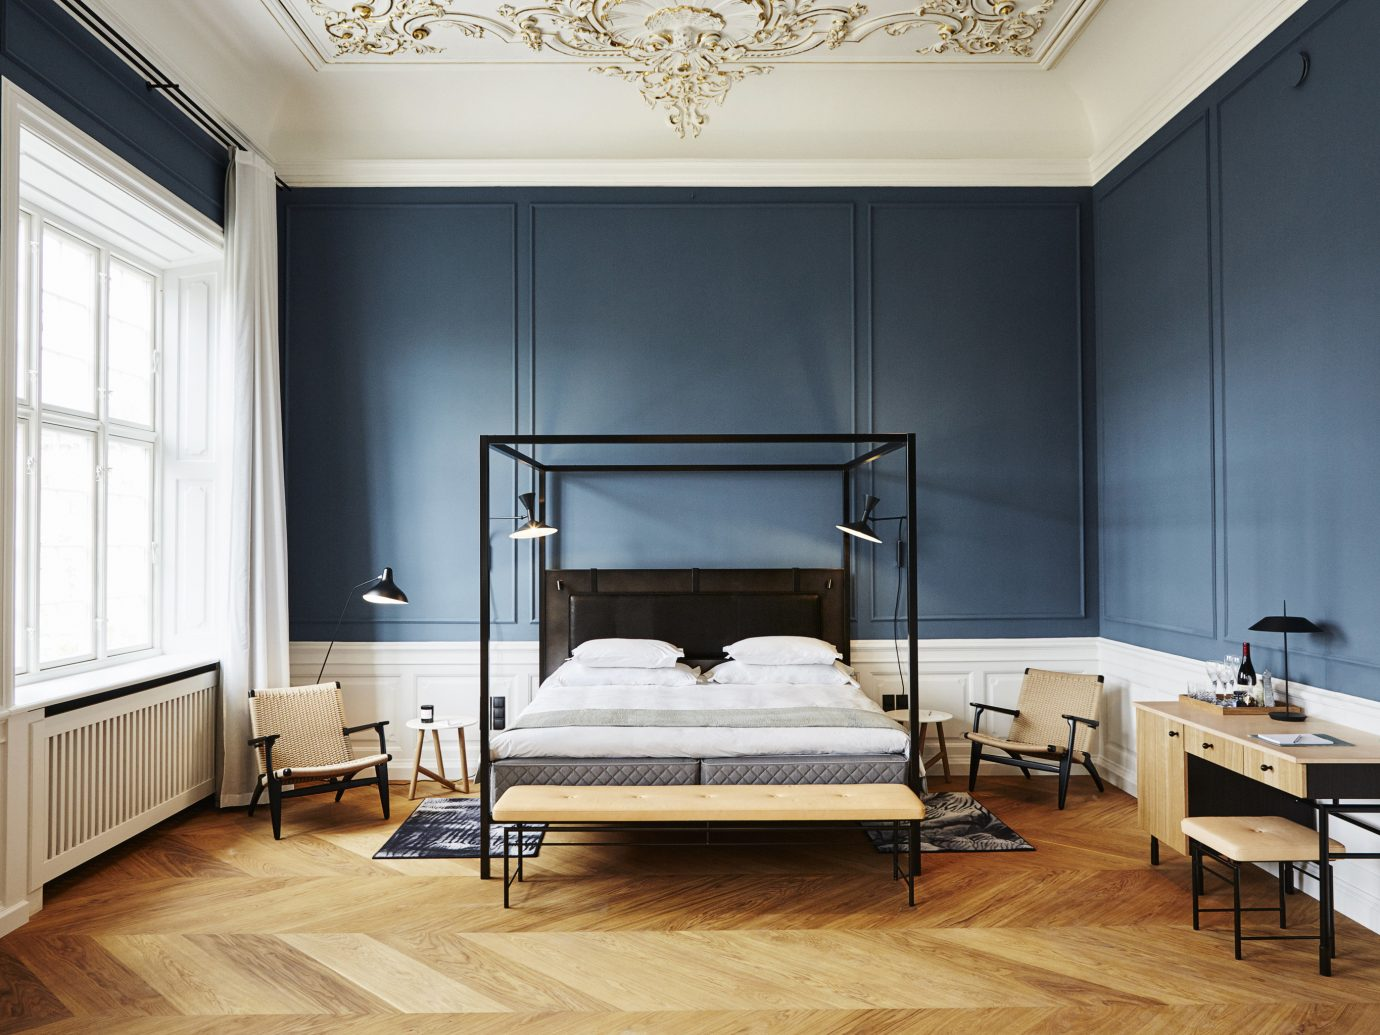 Architecture boutique hotels copenhagen denmark design fall travel hotels luxury travel news trip ideas floor indoor